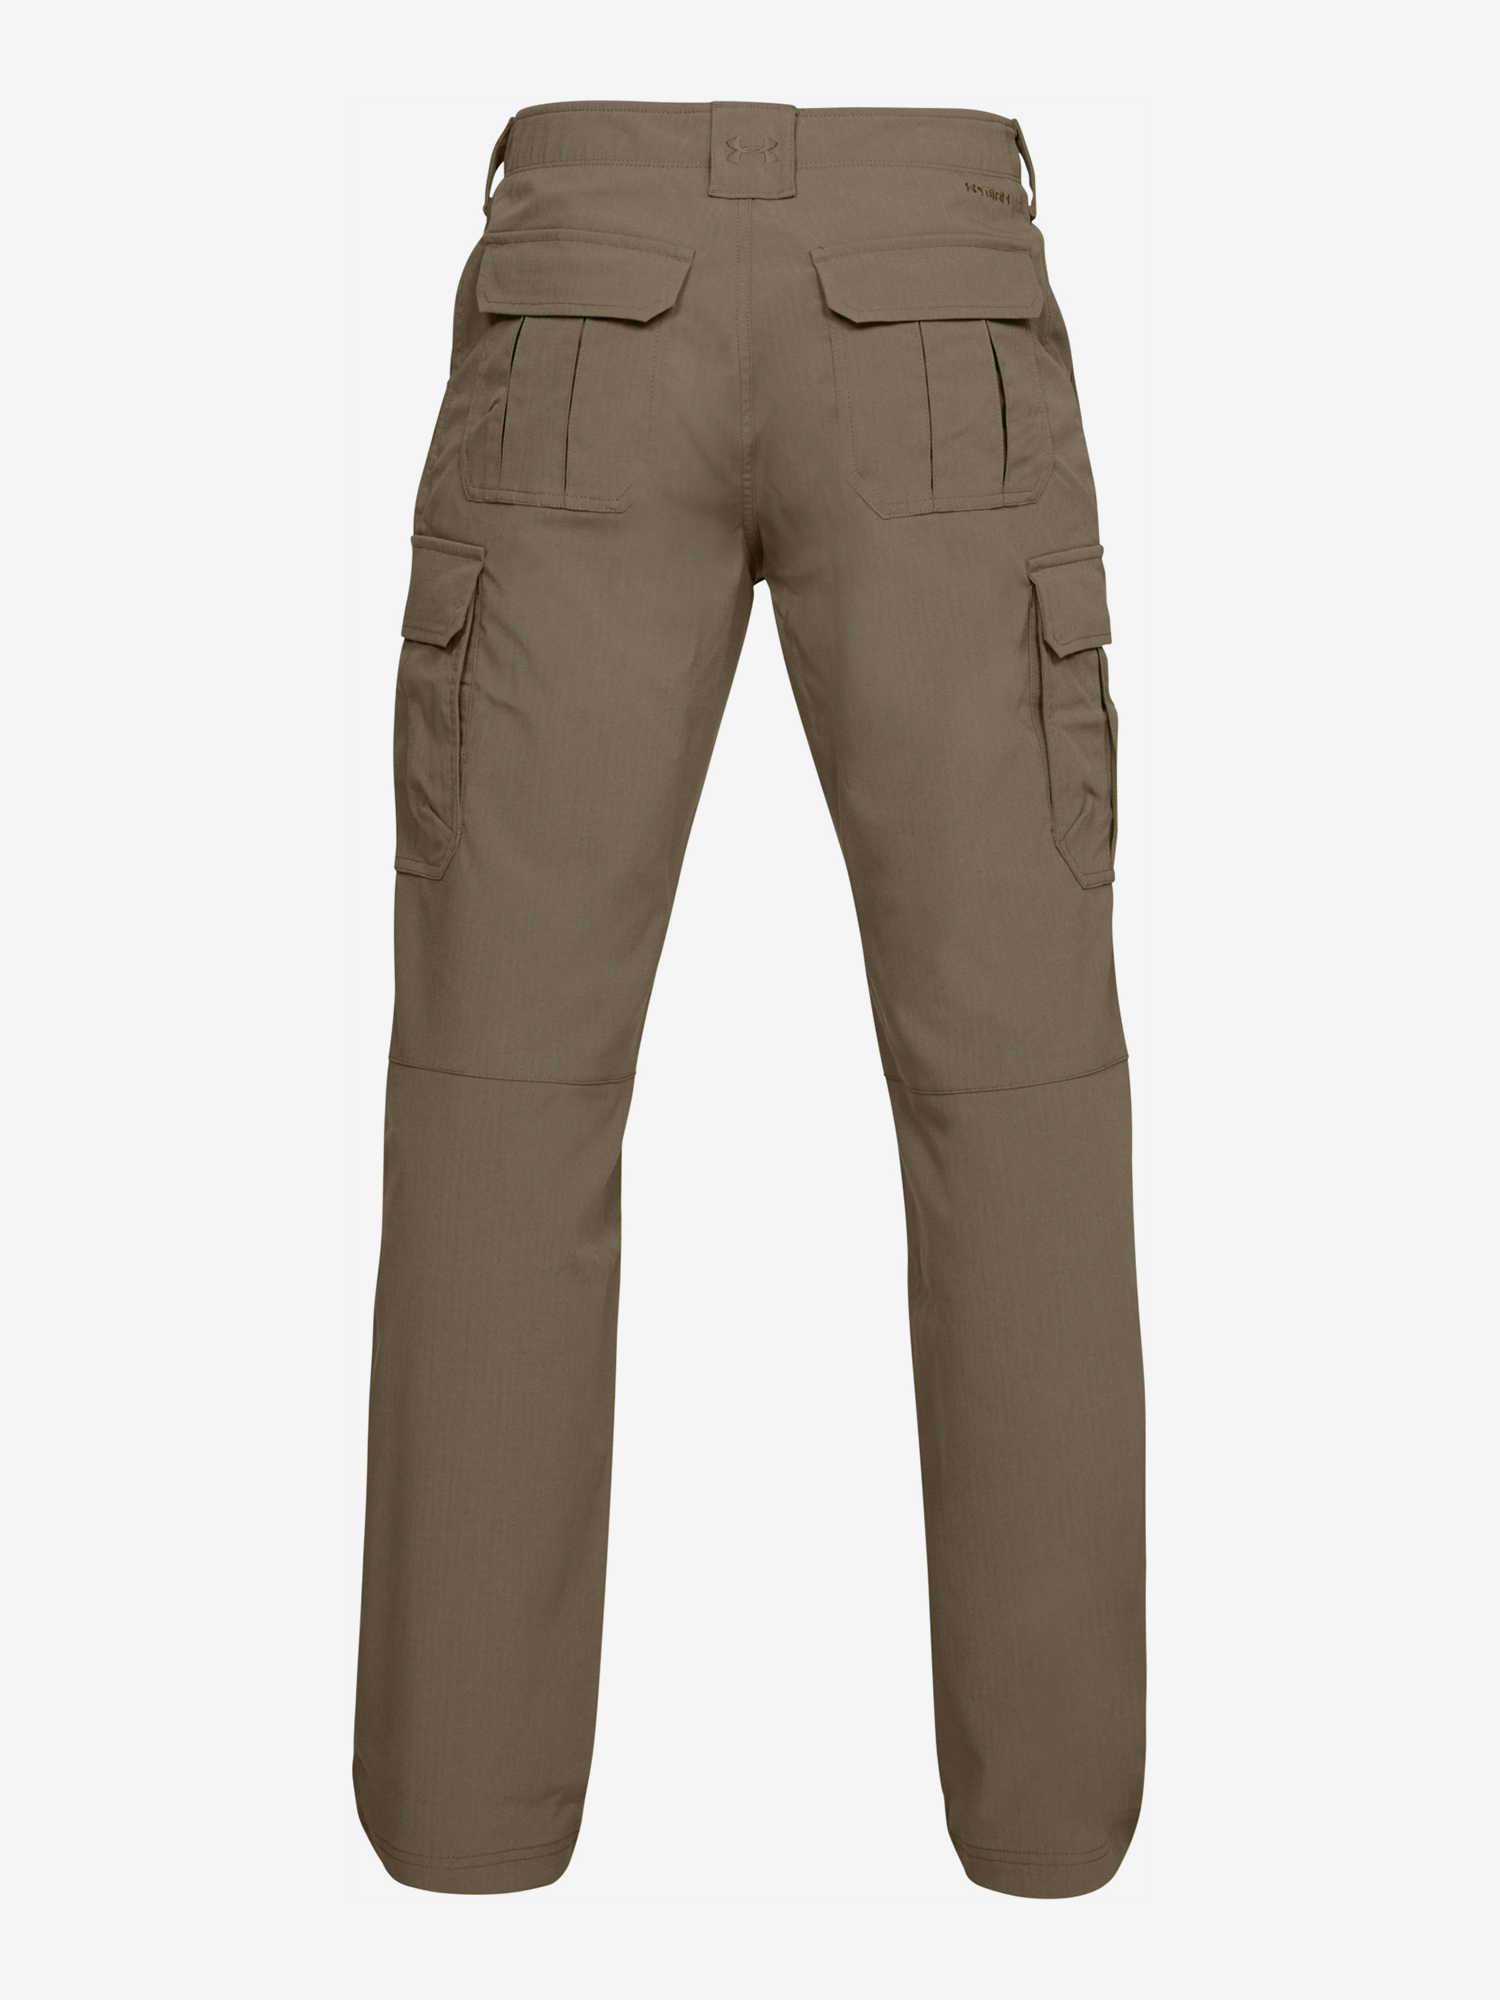 Nohavice Under Armour Tac Patrol Pant II-BRN (4)